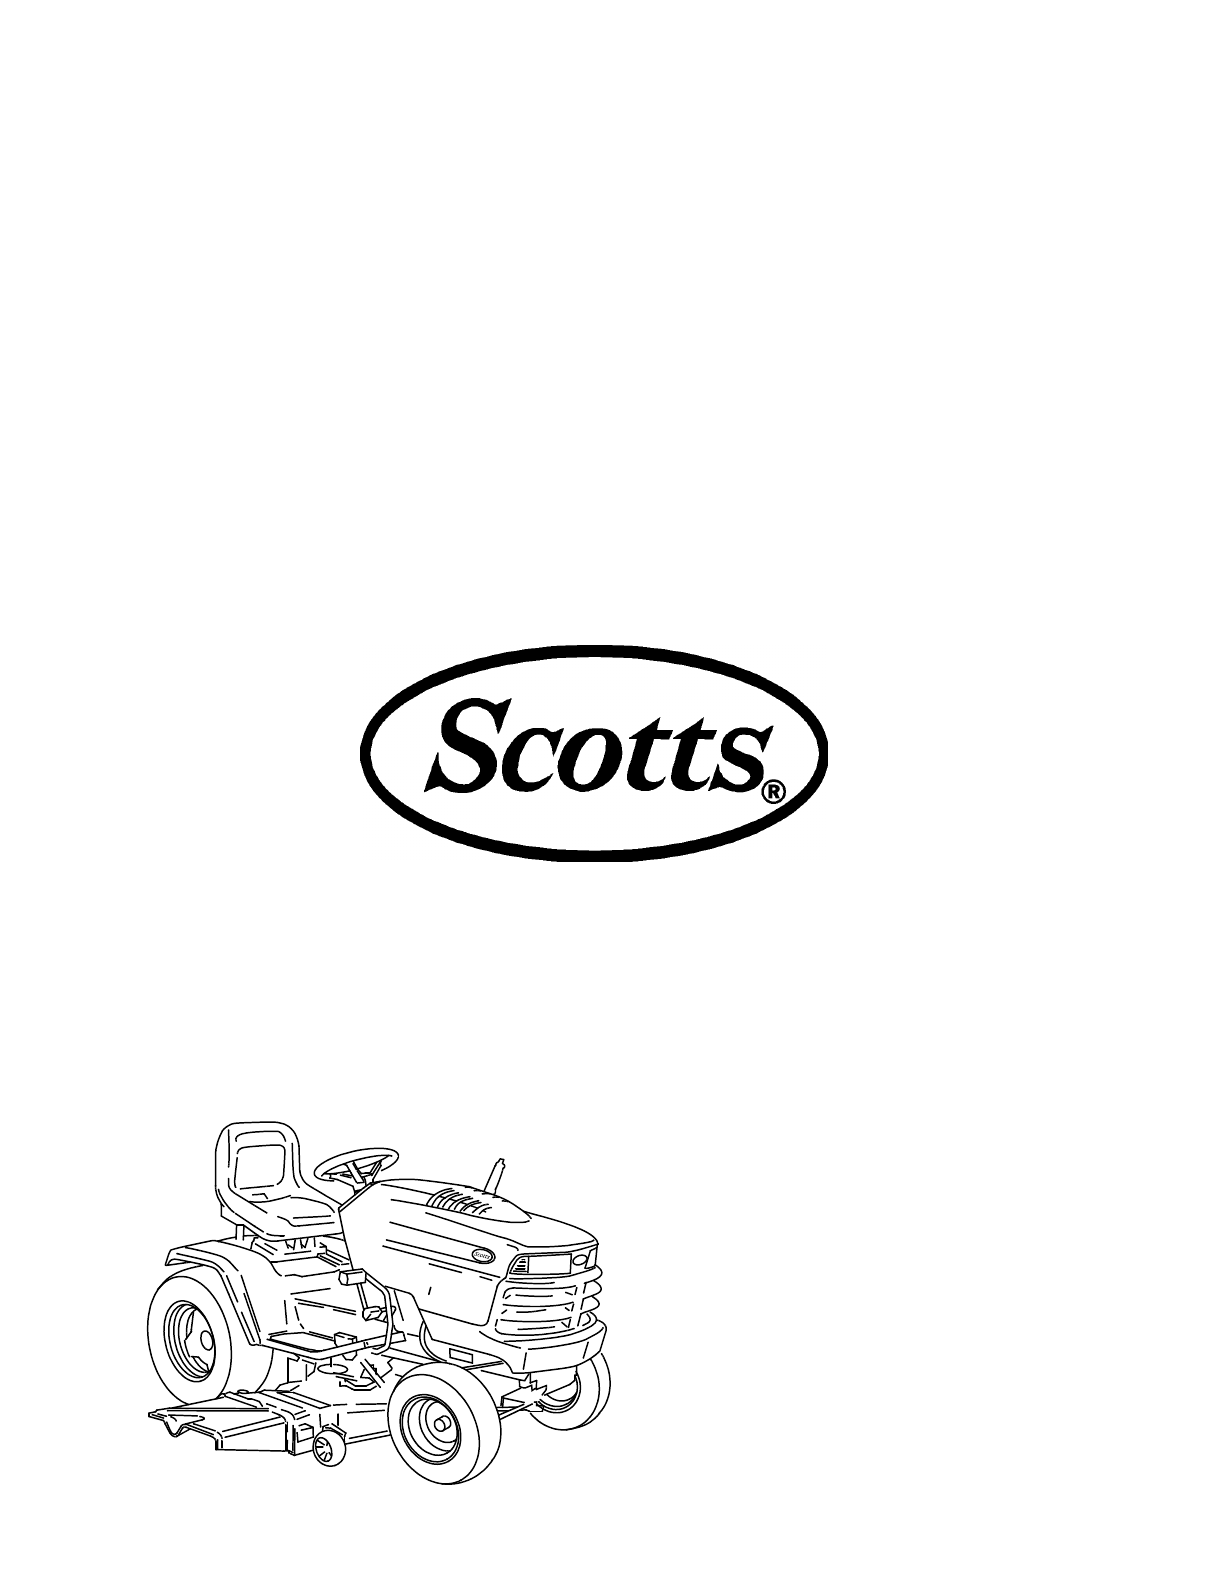 scotts s2554 wiring diagram get free image about wiring diagram